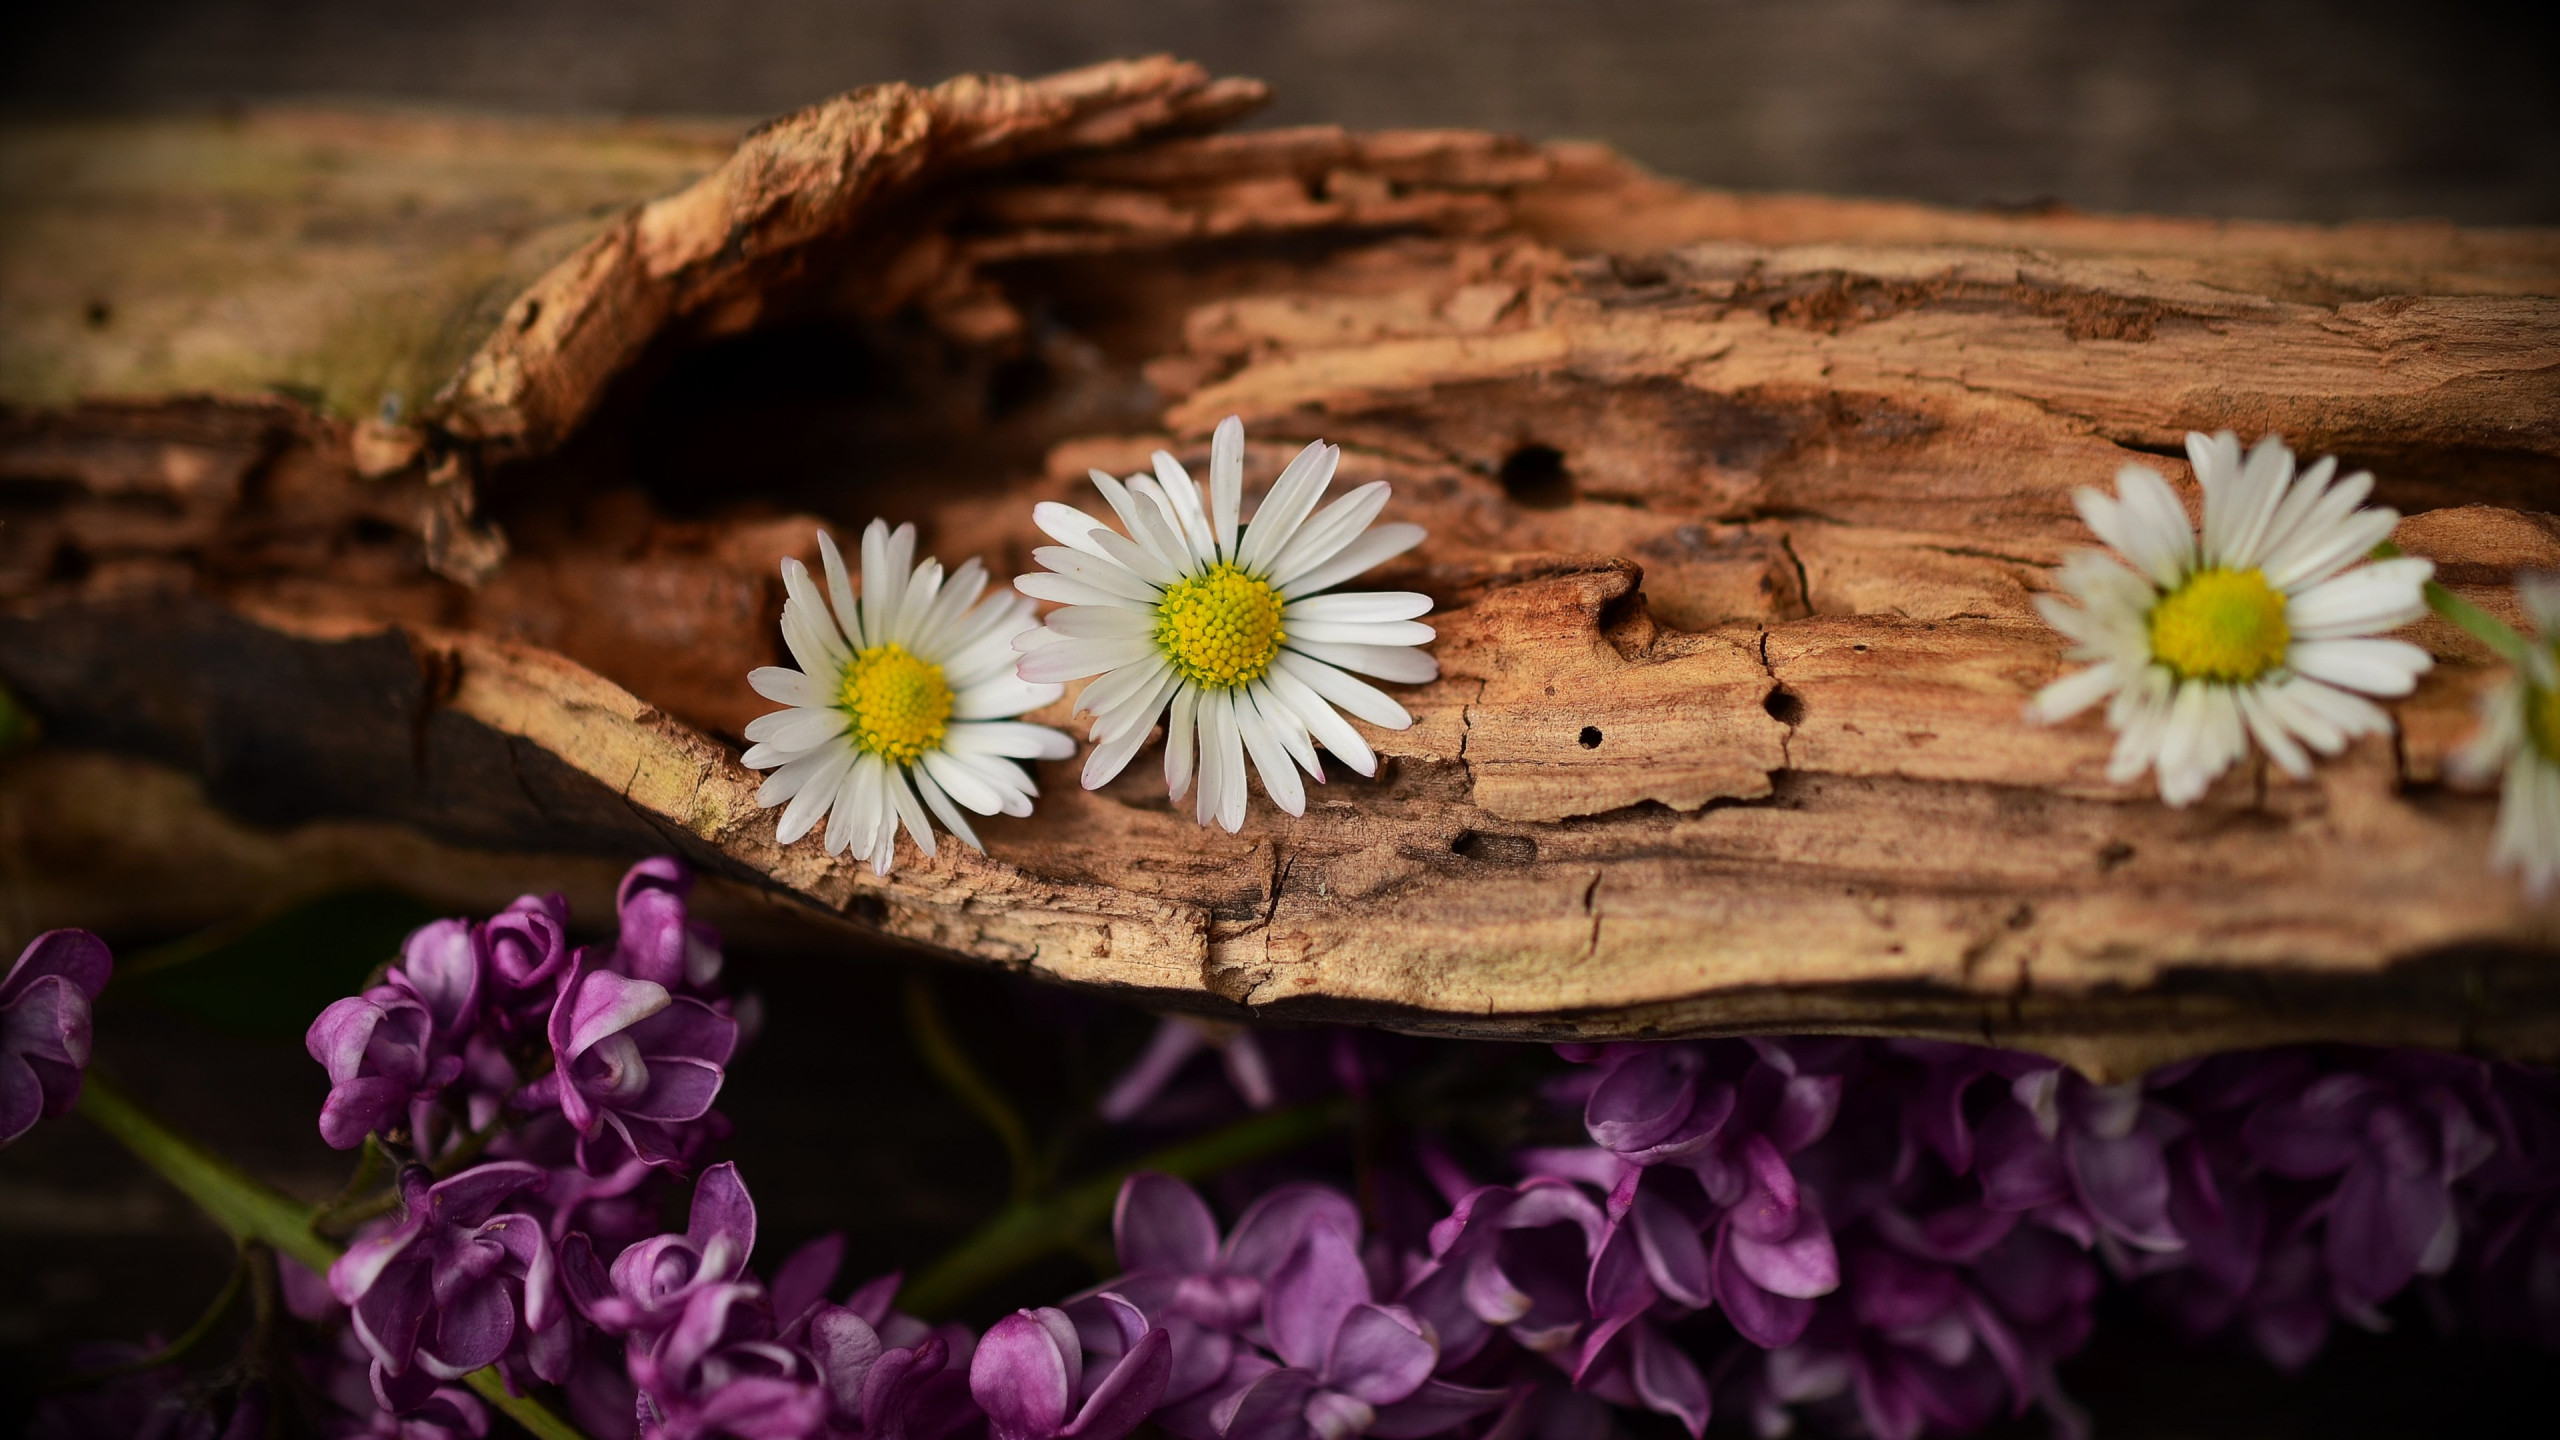 Old wood, lilac and daisy flowers wallpaper 2560x1440